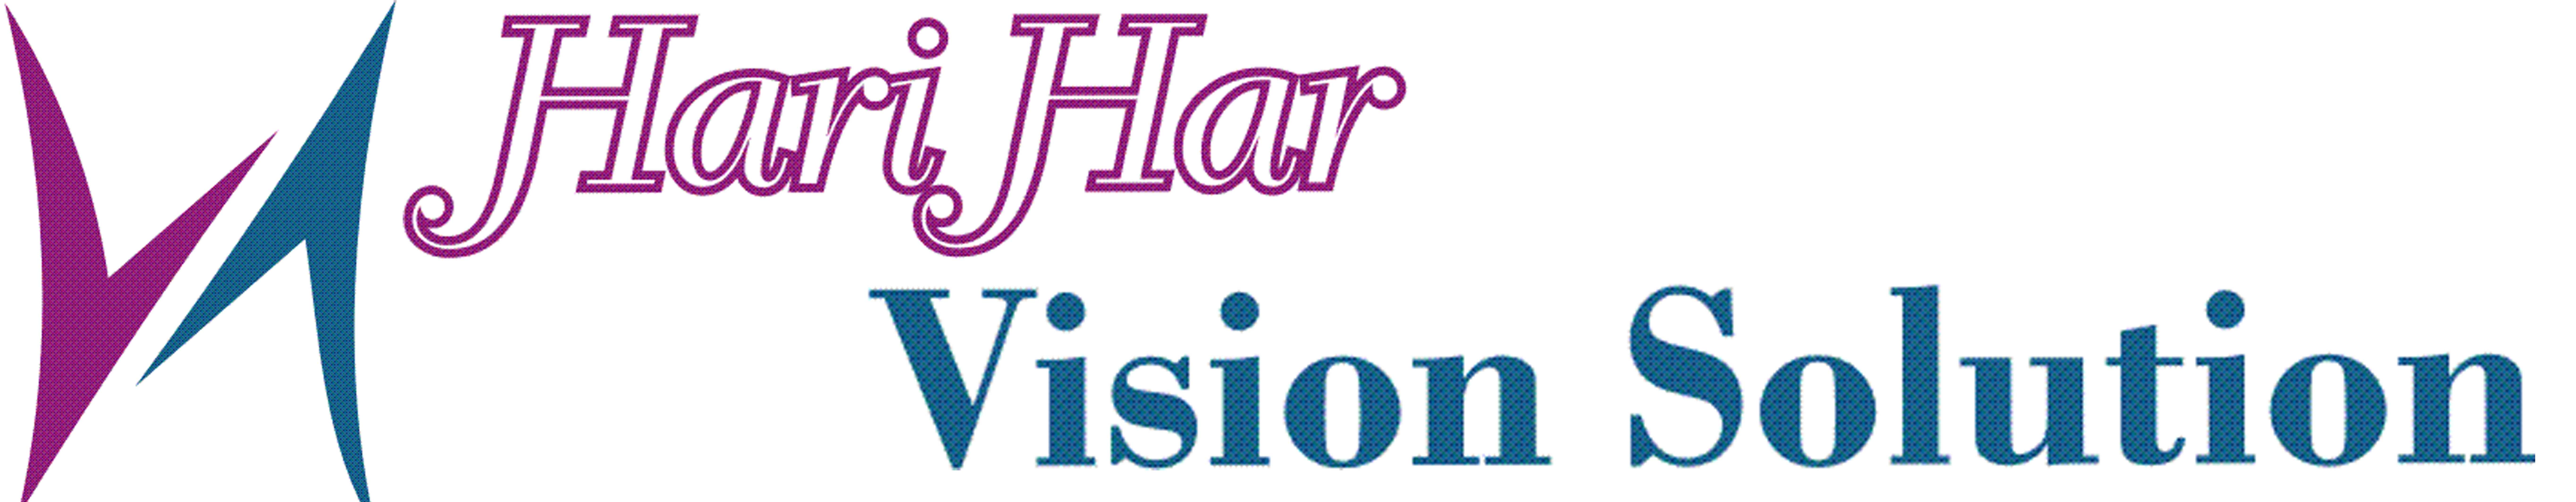 Harihar Vision Solution